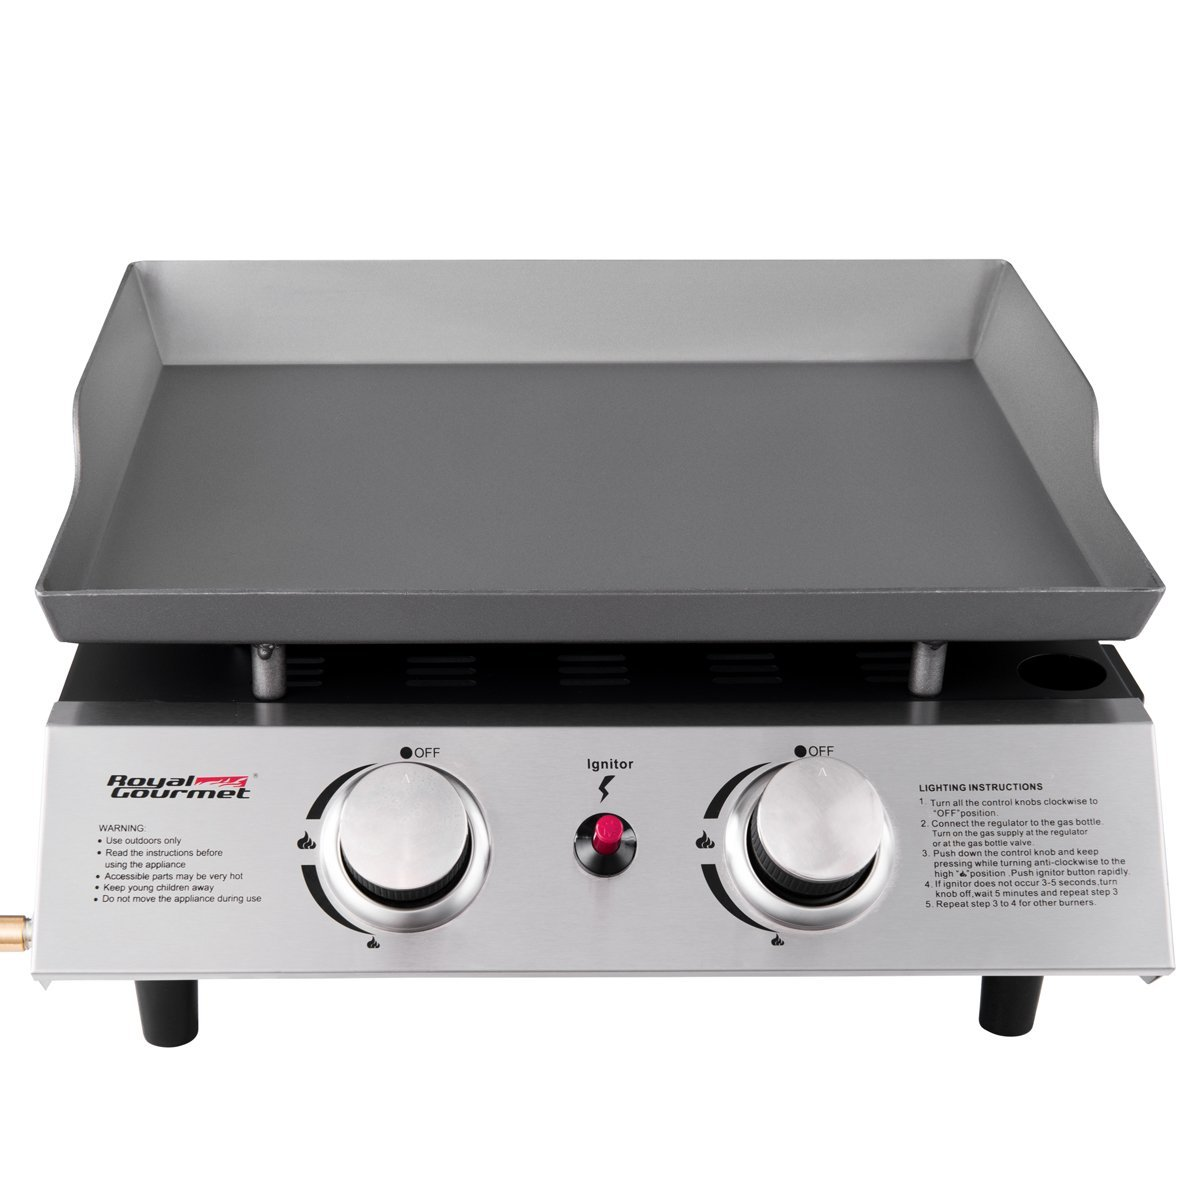 a3f9560f936 Royal Gourmet Table Top Portable 2 Burner Propane Gas Grill Griddle nbsp  -  Walmart.com